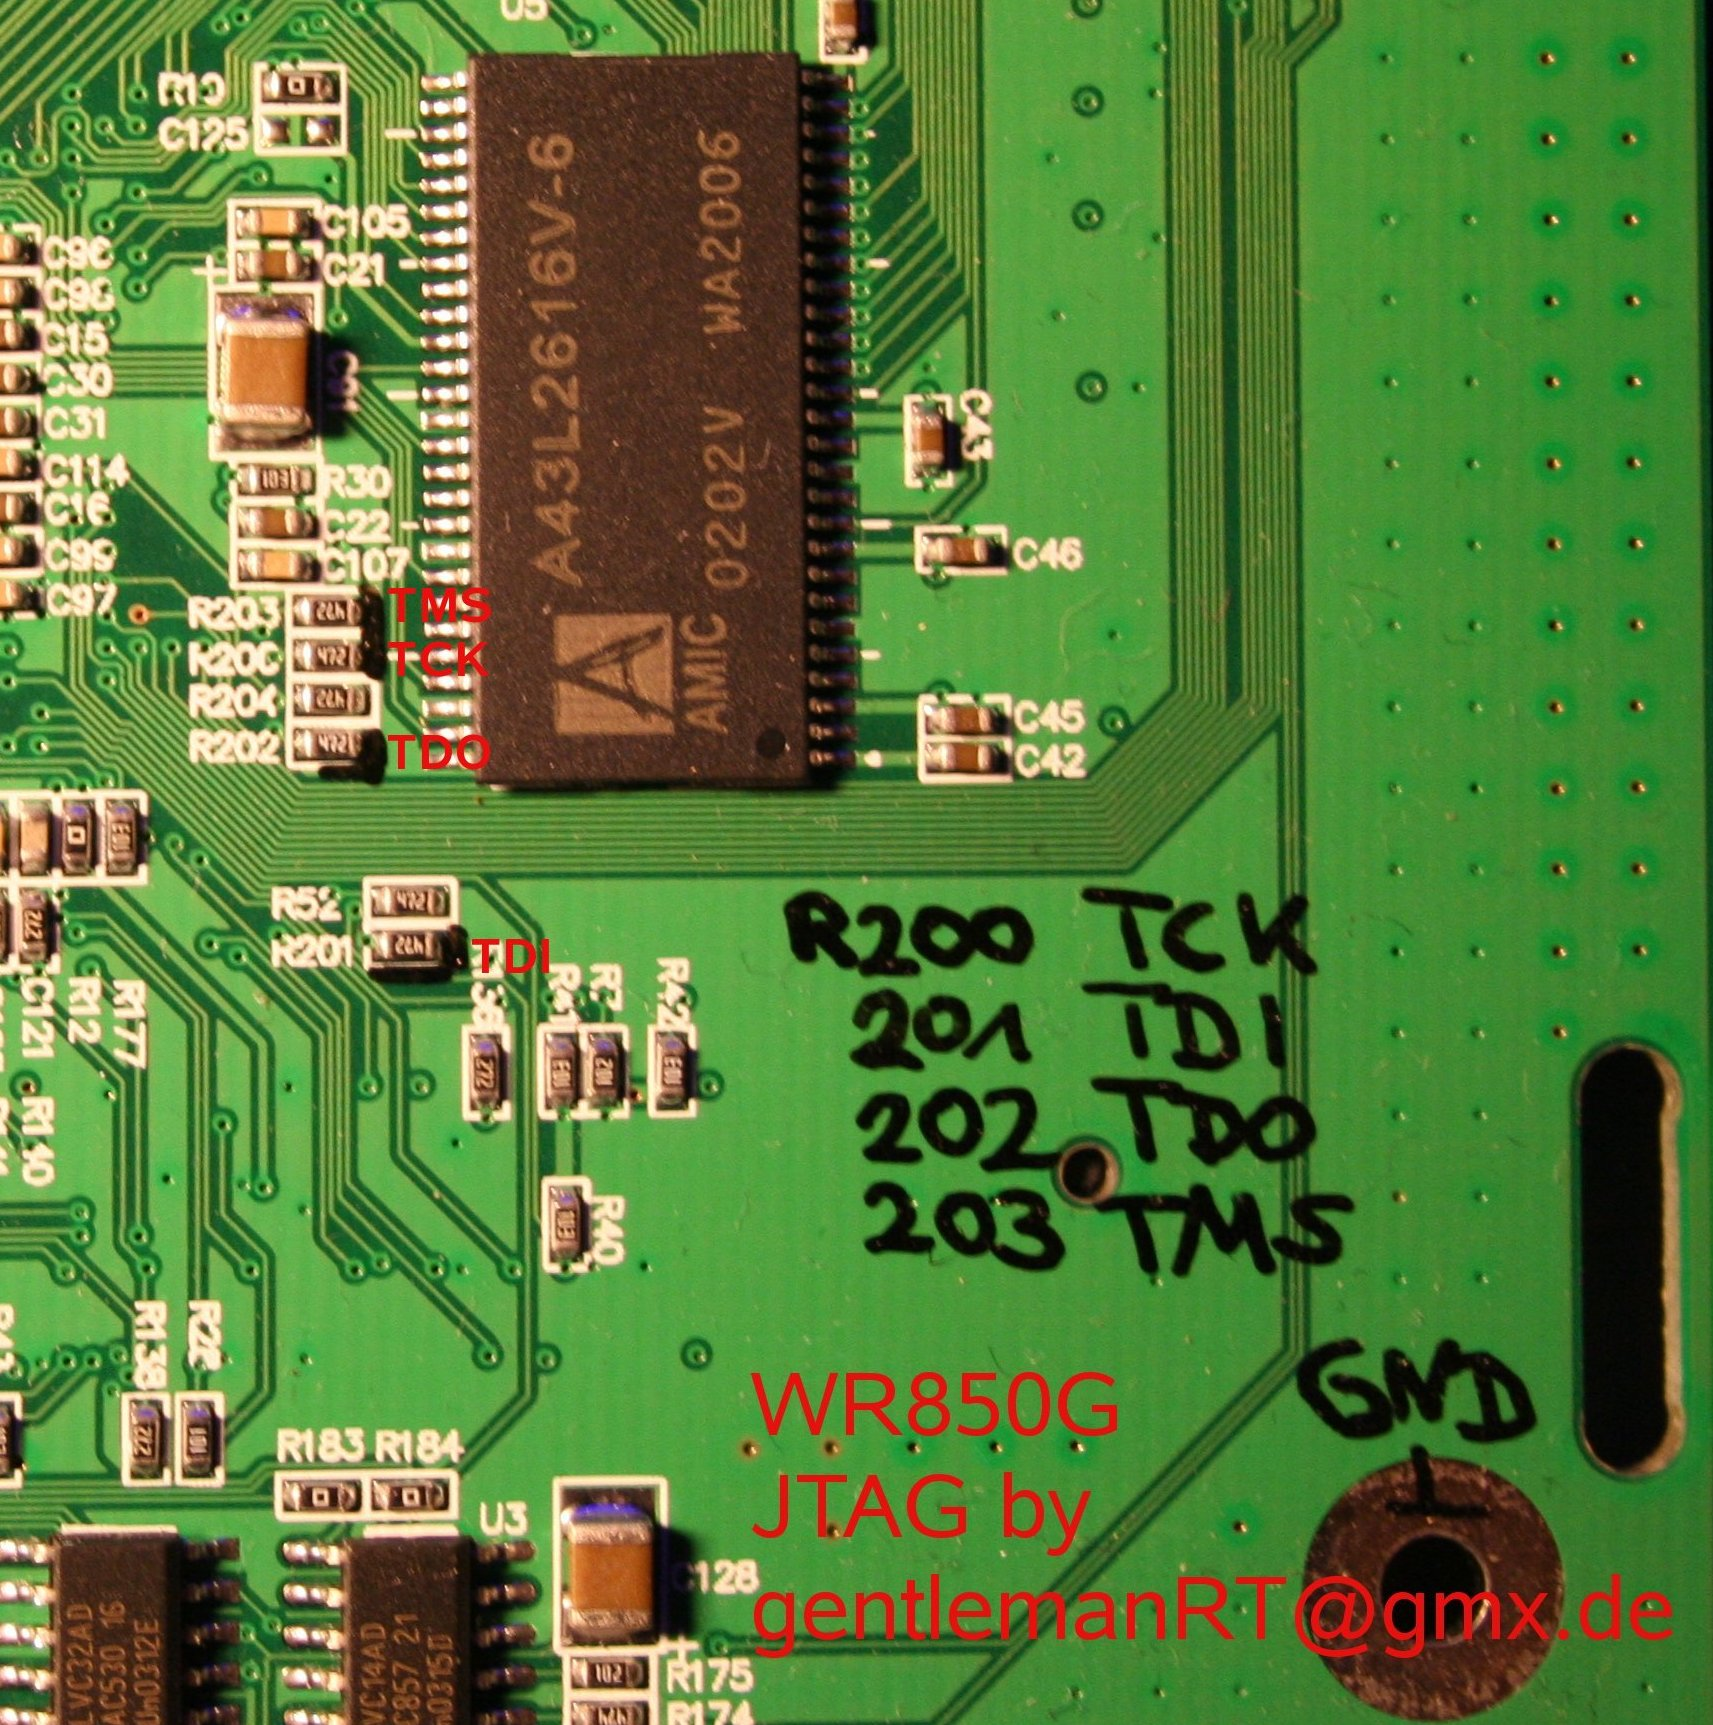 DD-WRT Forum :: View topic - Motorola WR850G v1 JTAG Pinout